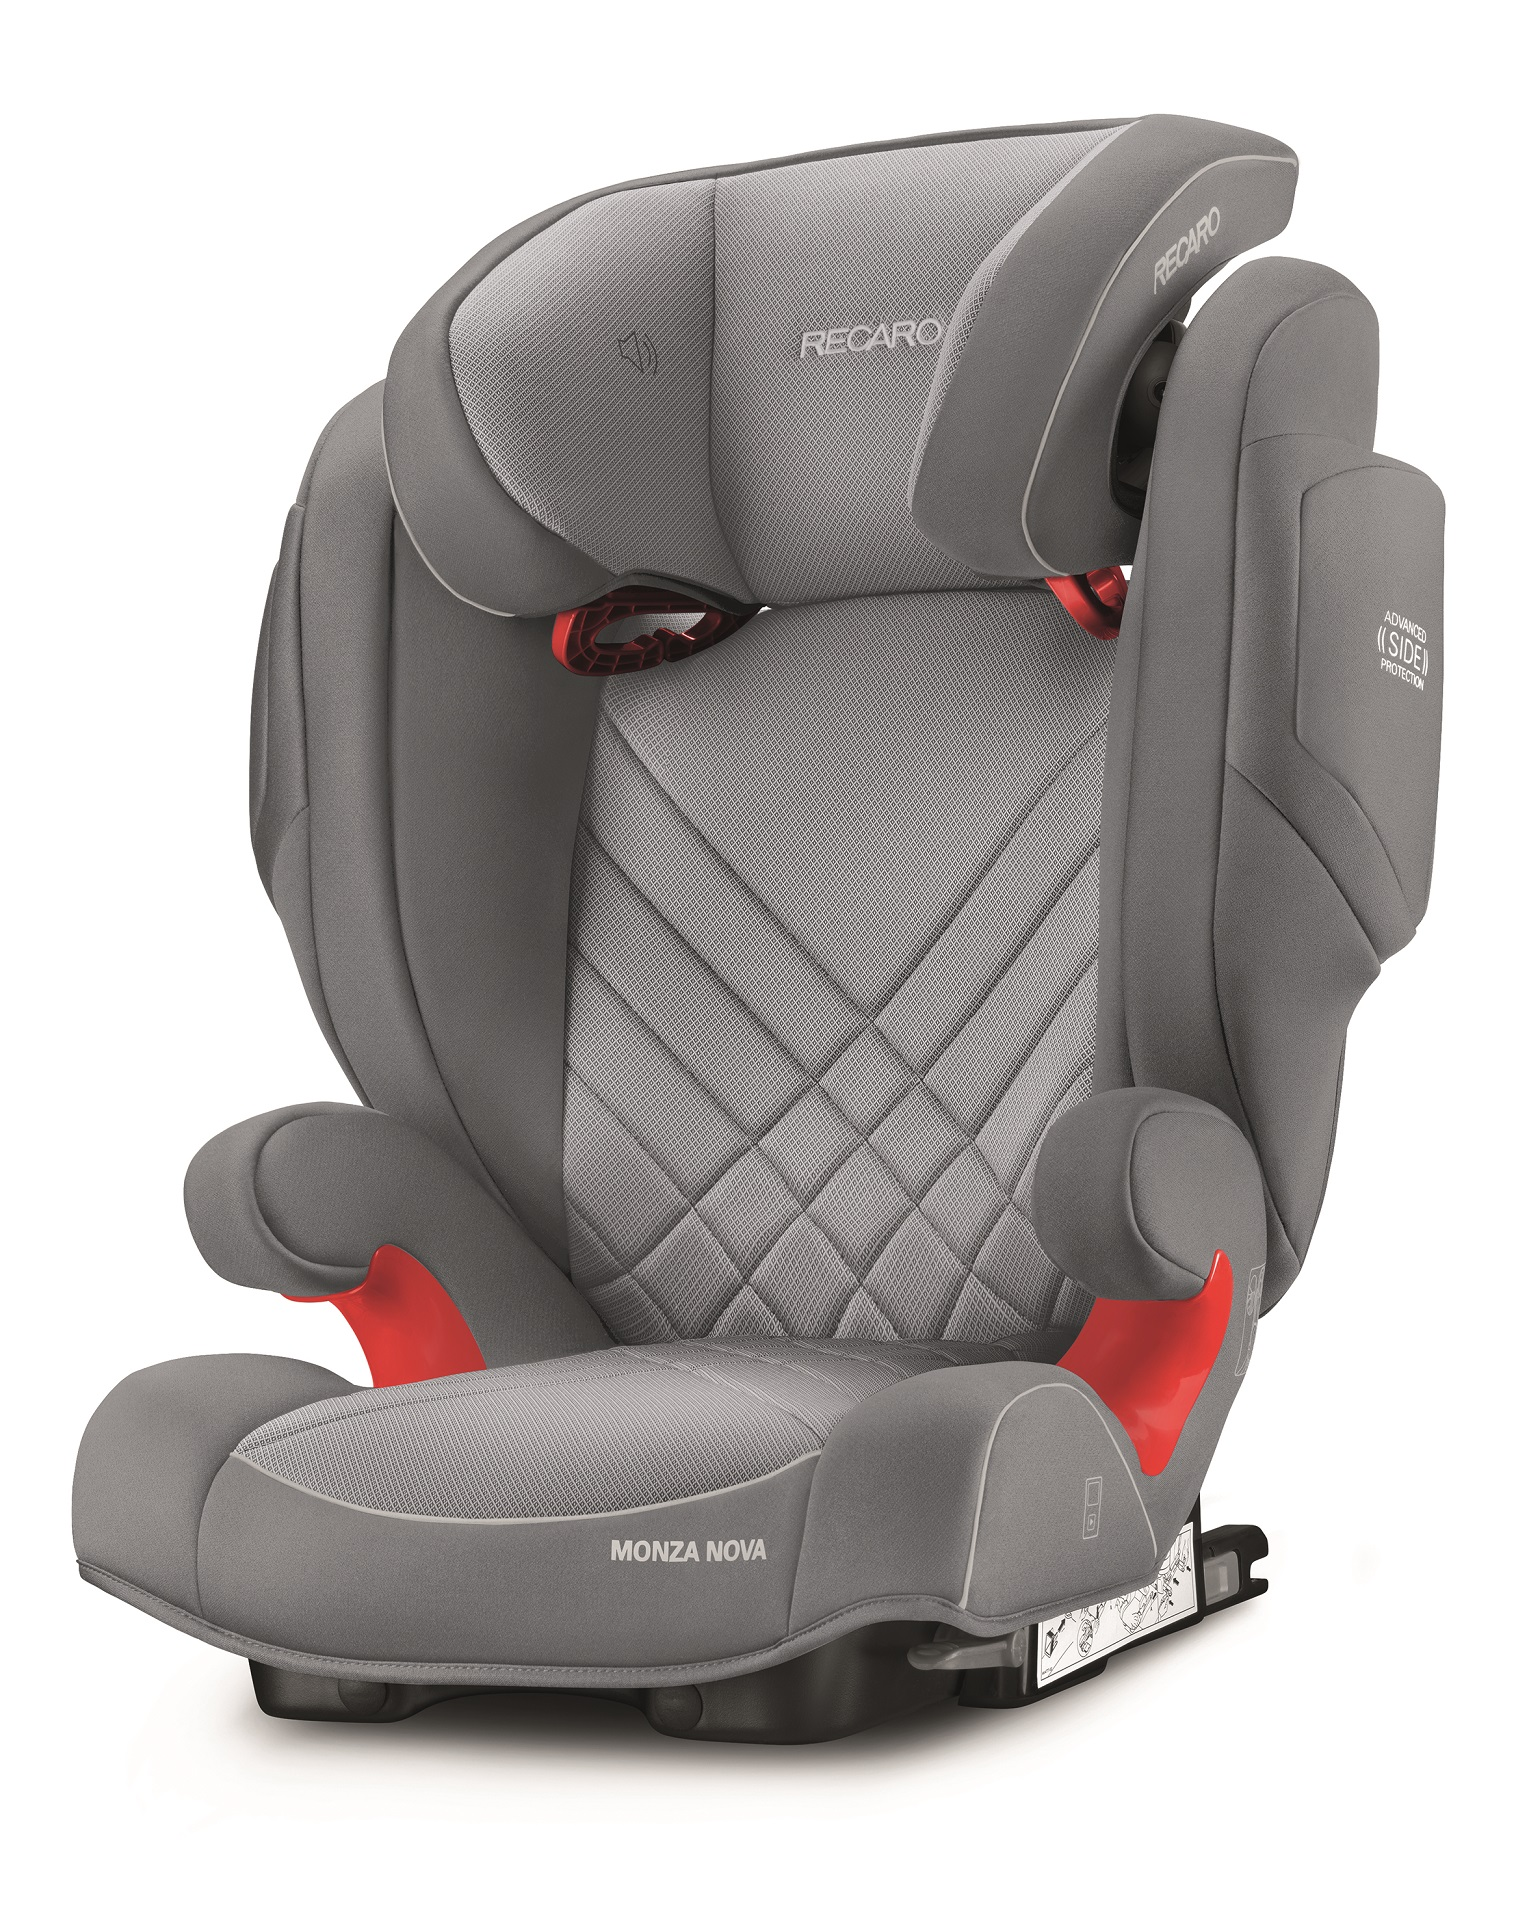 recaro child car seat monza nova 2 seatfix 2018 aluminium grey buy at kidsroom car seats. Black Bedroom Furniture Sets. Home Design Ideas